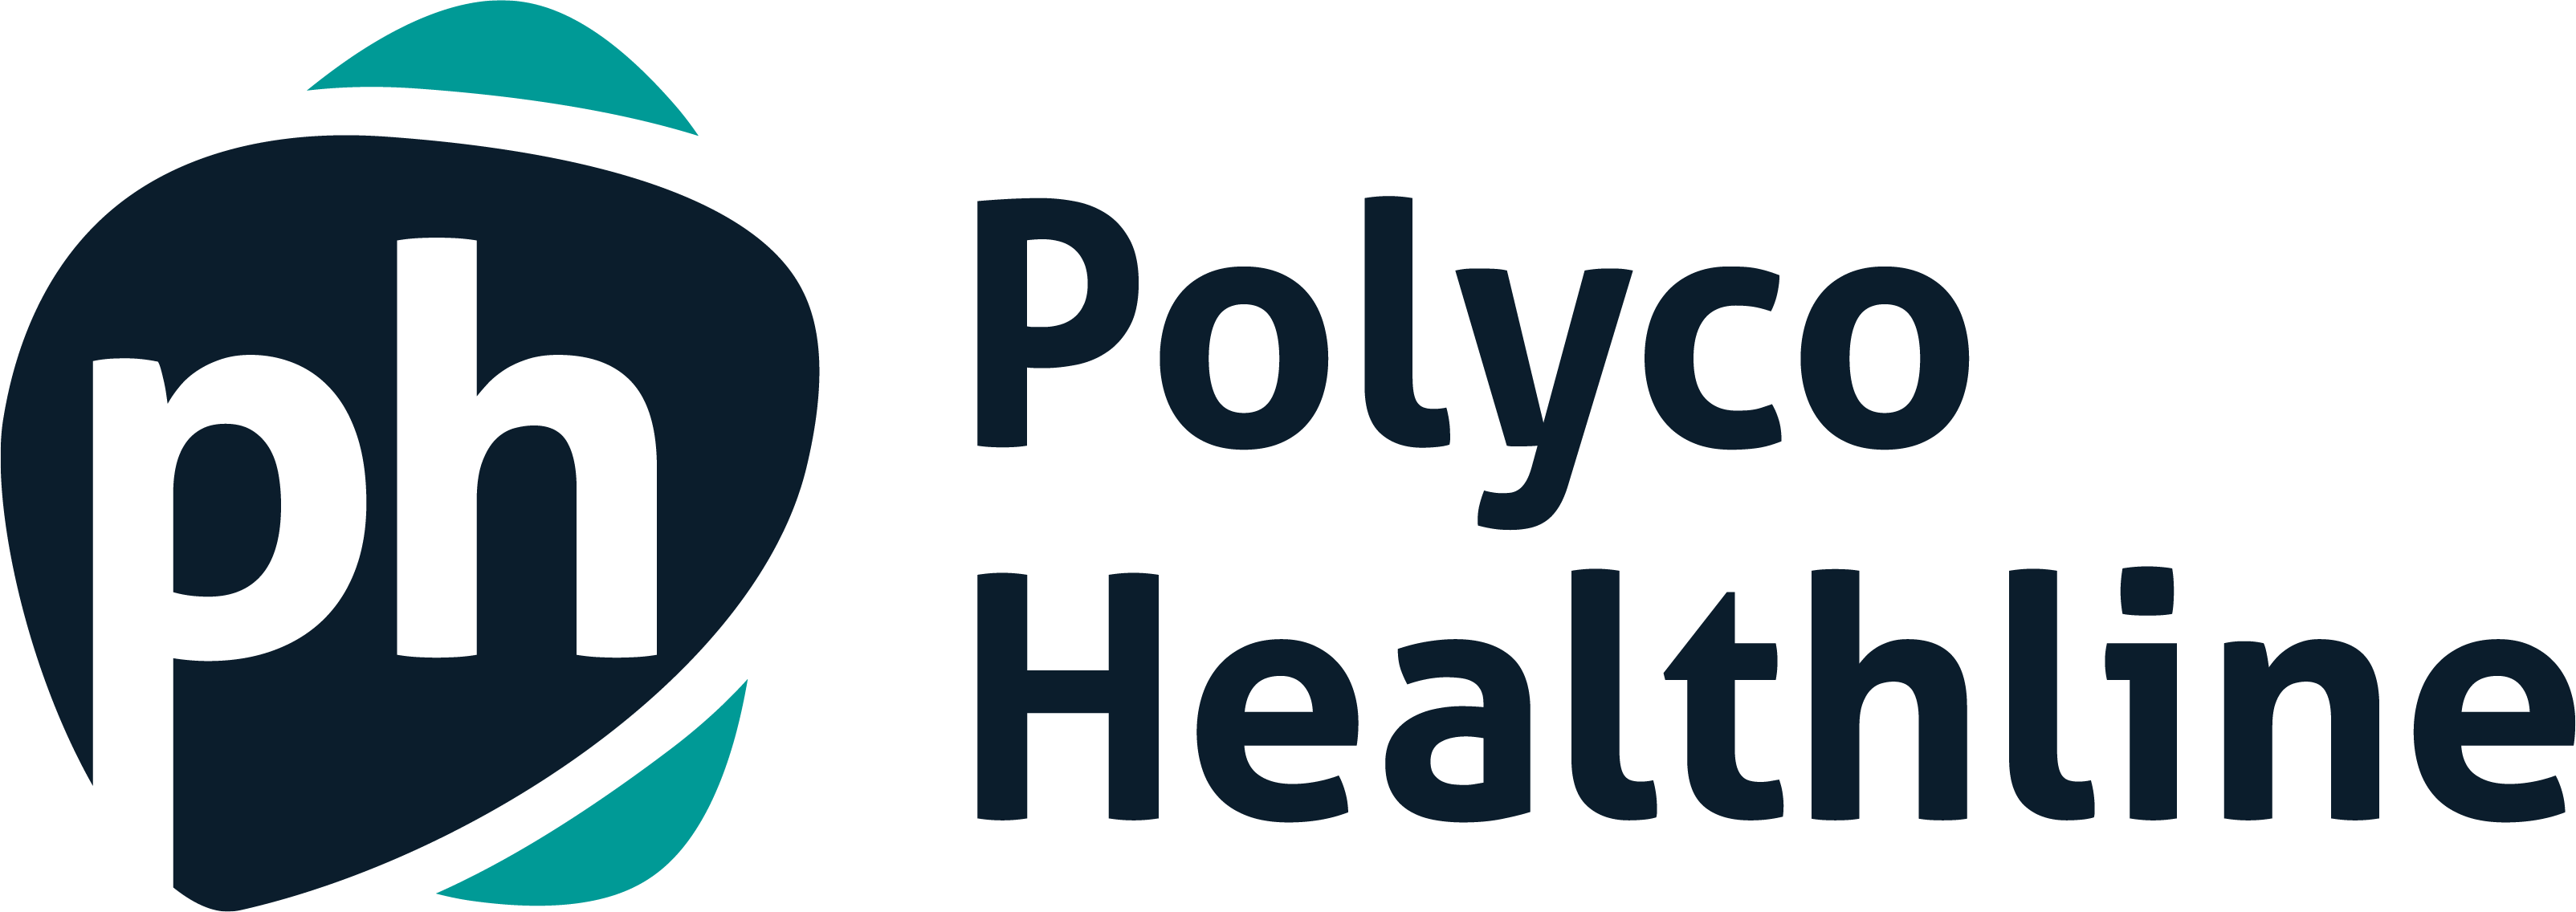 Polycohealthcare